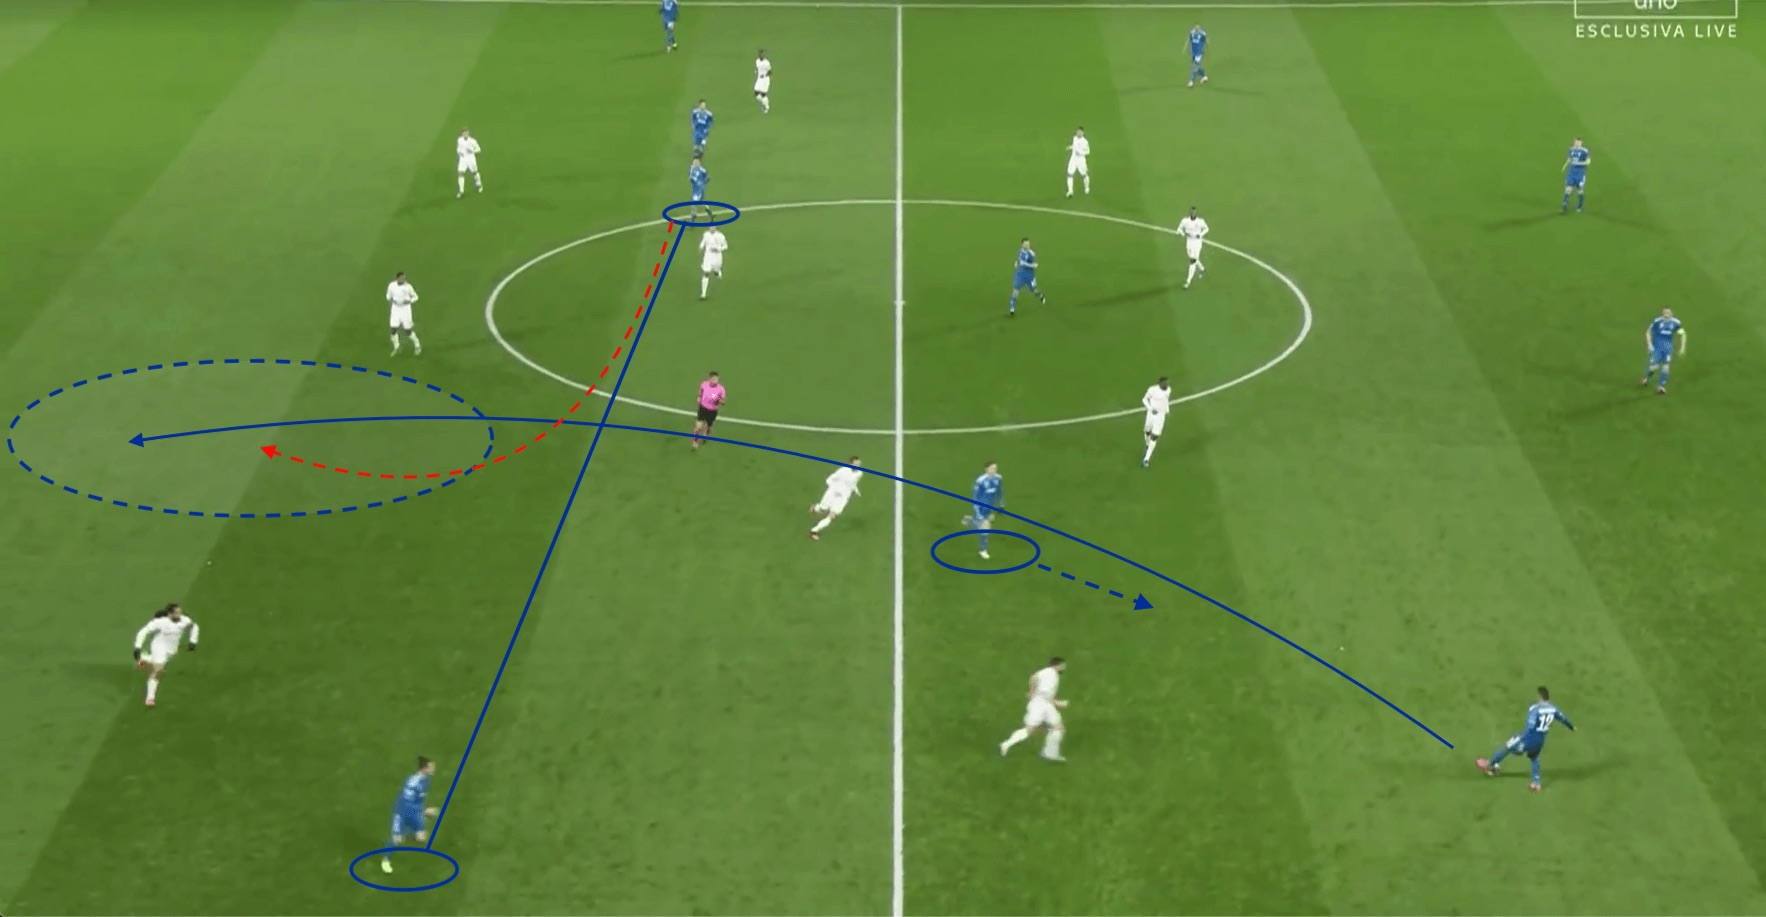 Champions League 2019/20: Lyon vs Juventus - tactical analysis tactics